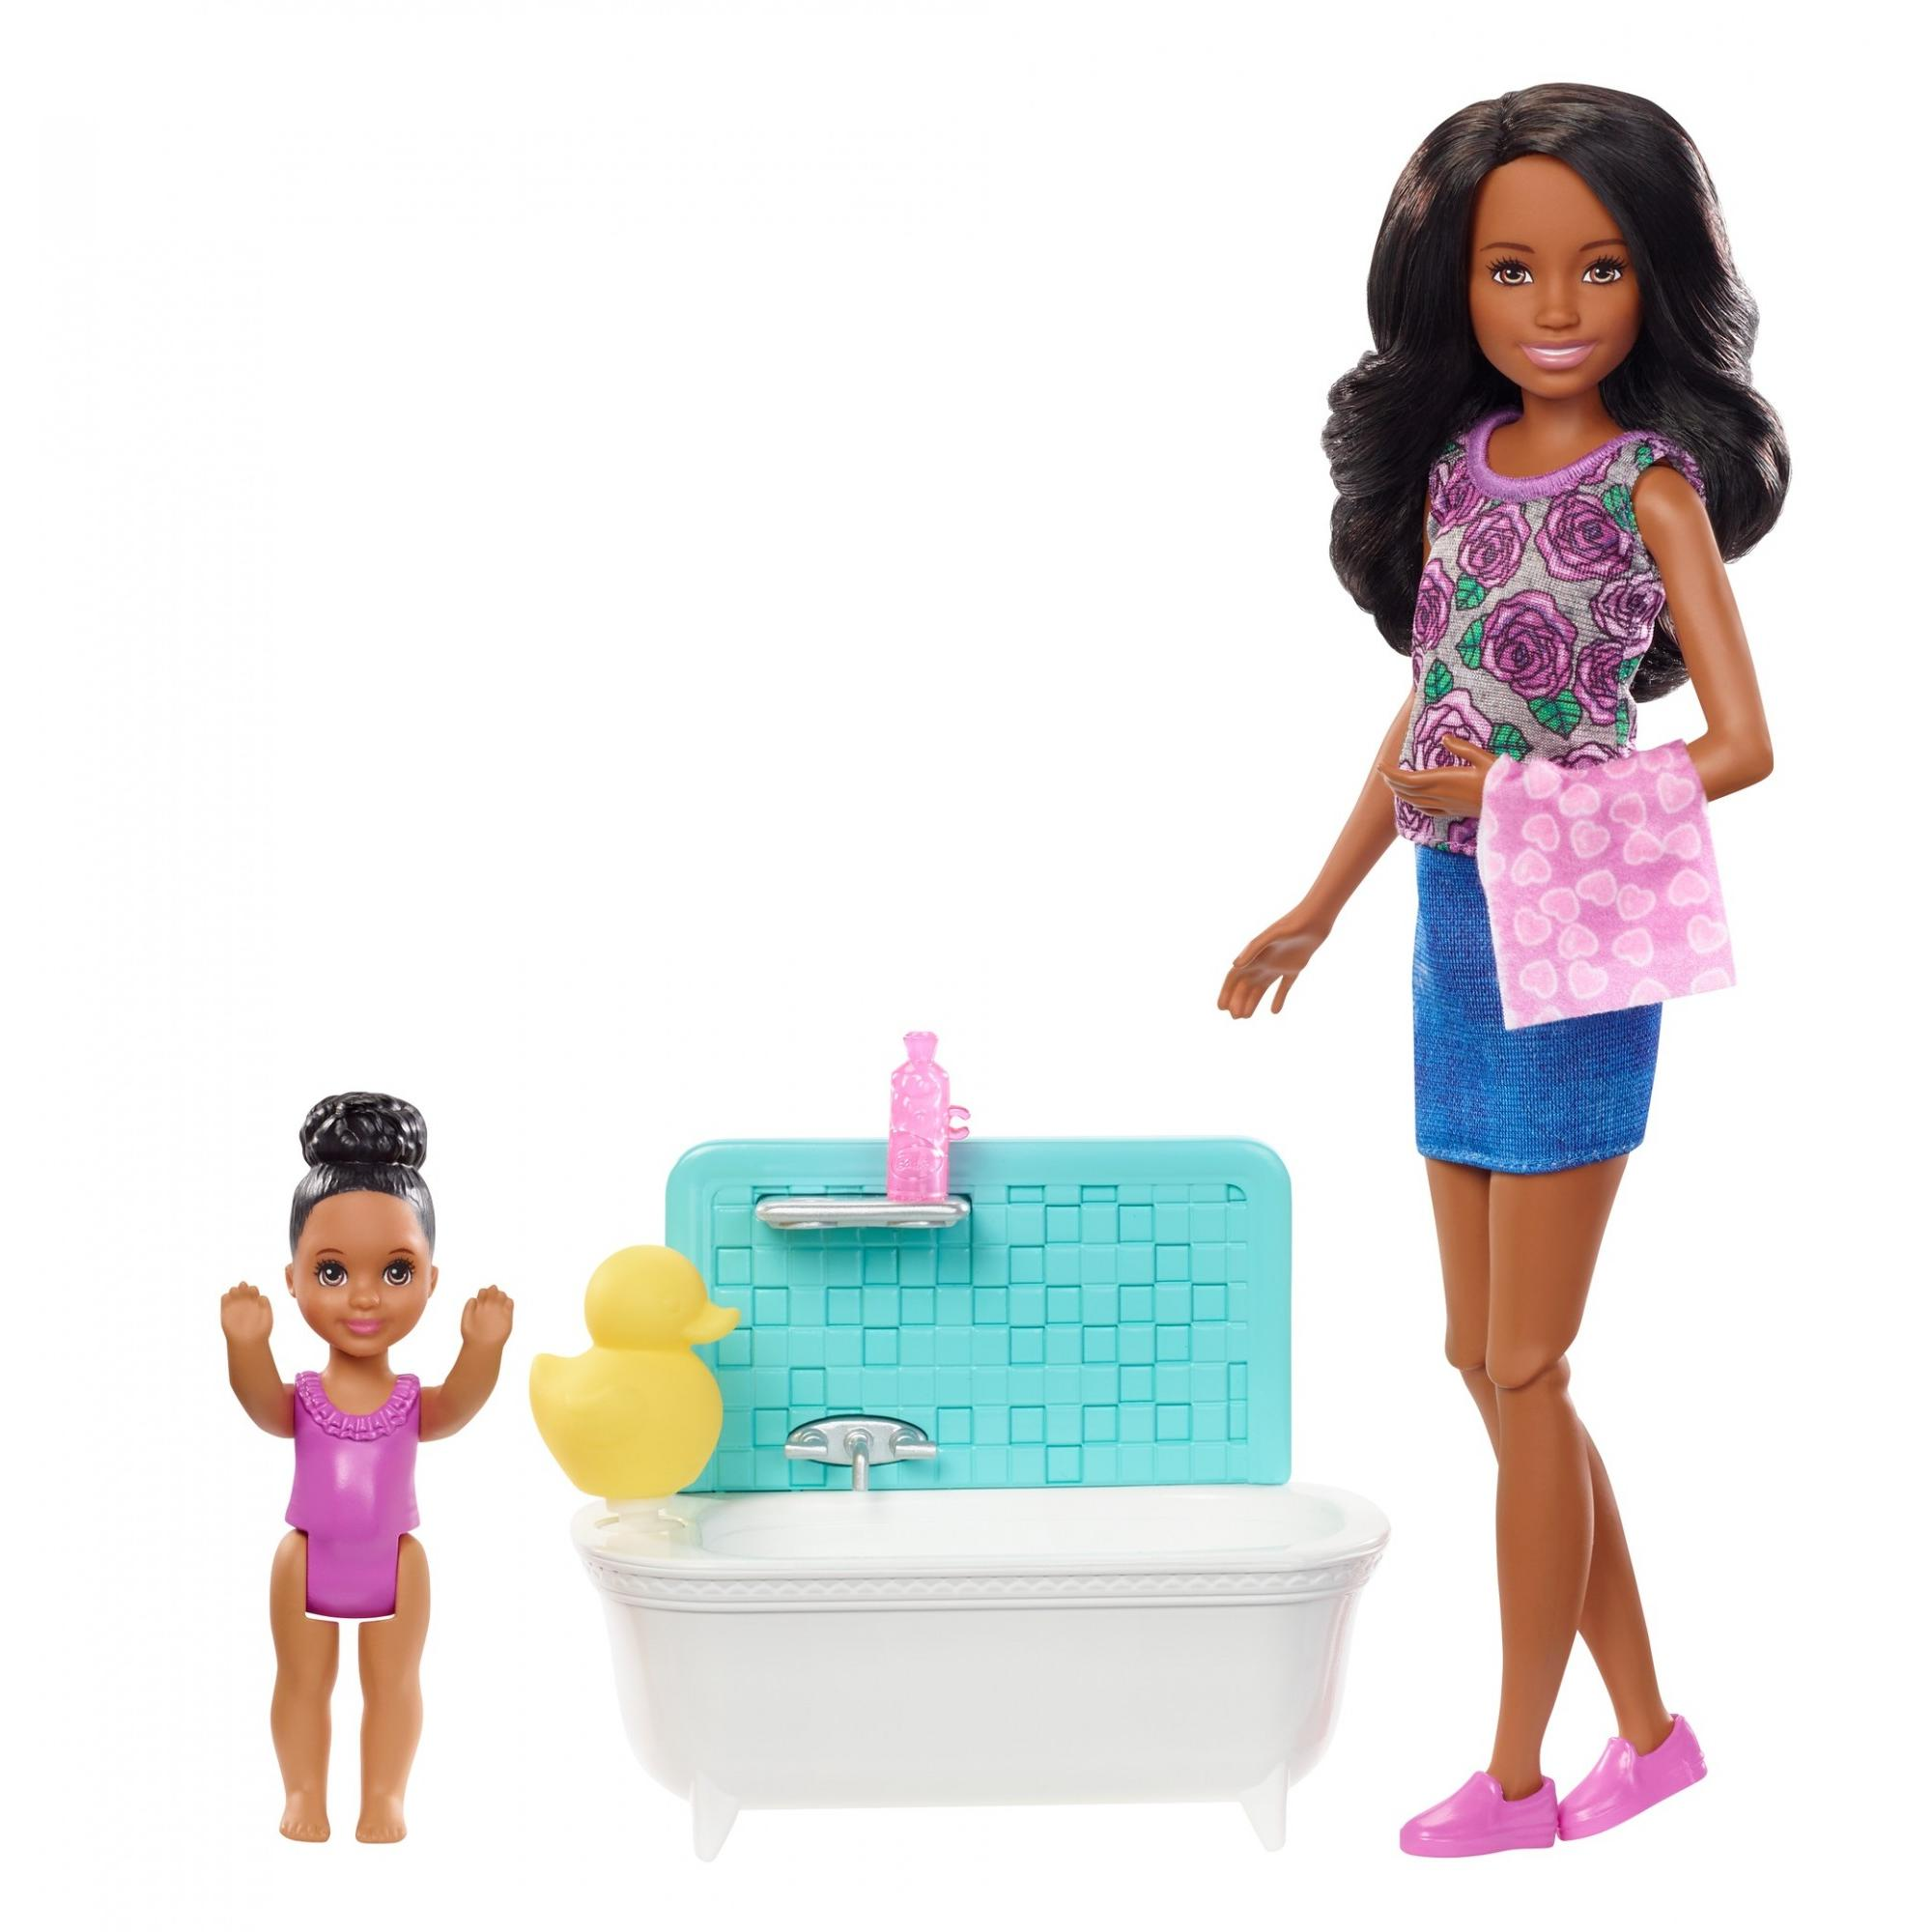 Barbie Skipper Babysitters Inc Bath Time Playset with Toddler Doll